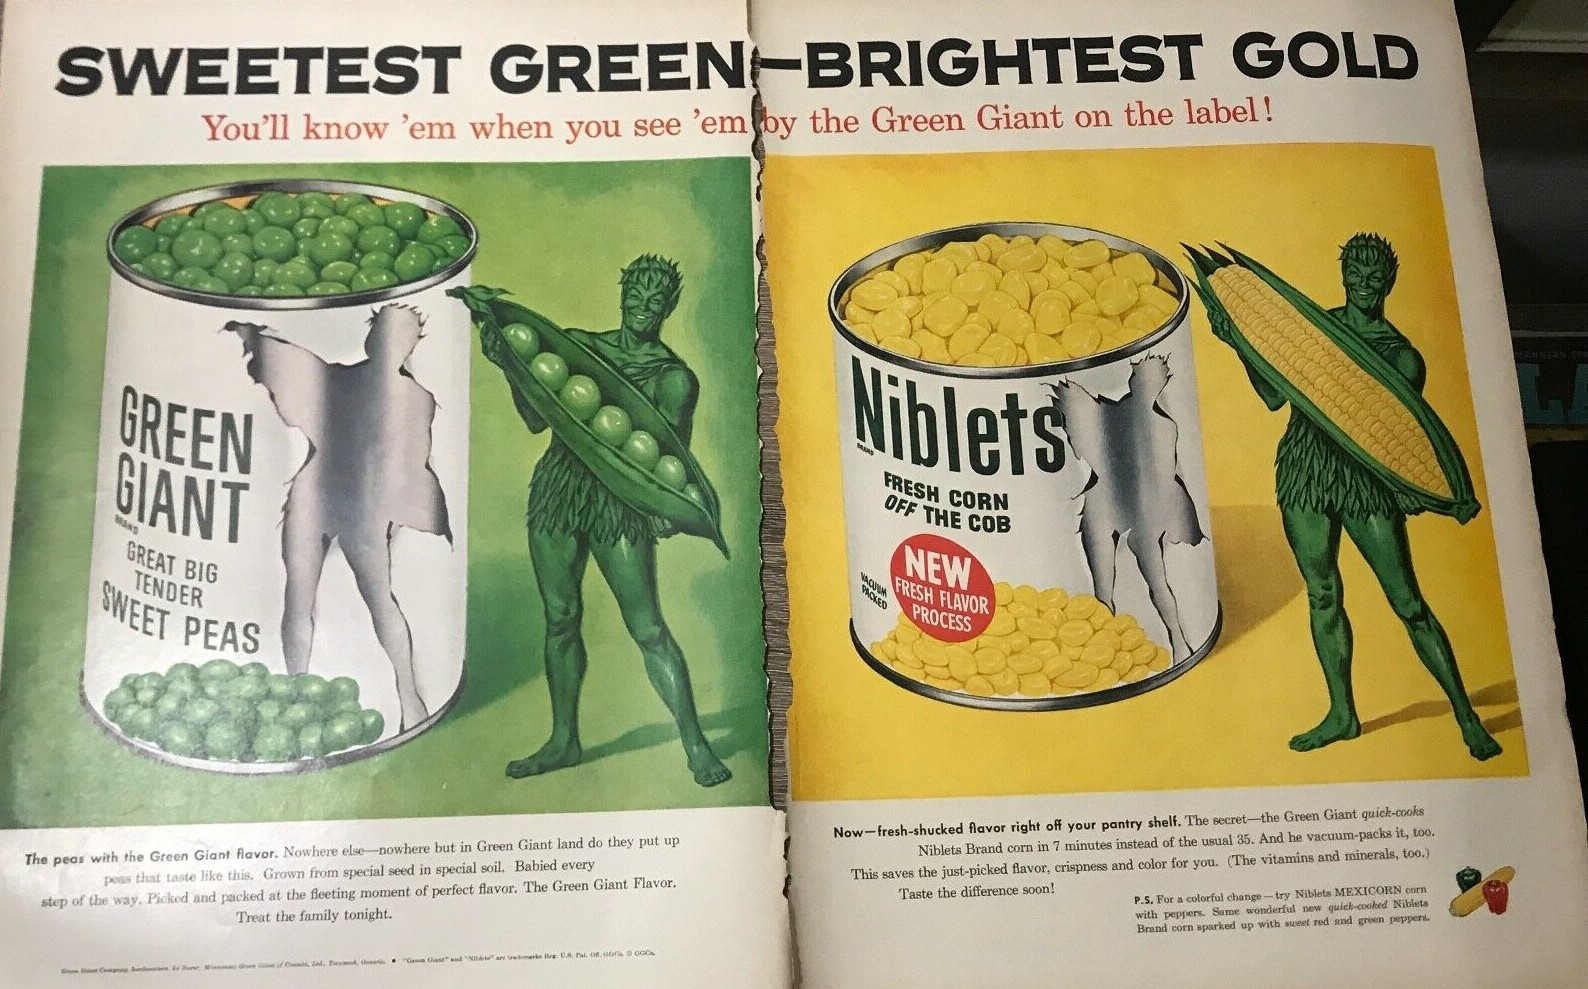 1950 LIFE MAGAZINE GREEN GIANT SWEETEST GREEN